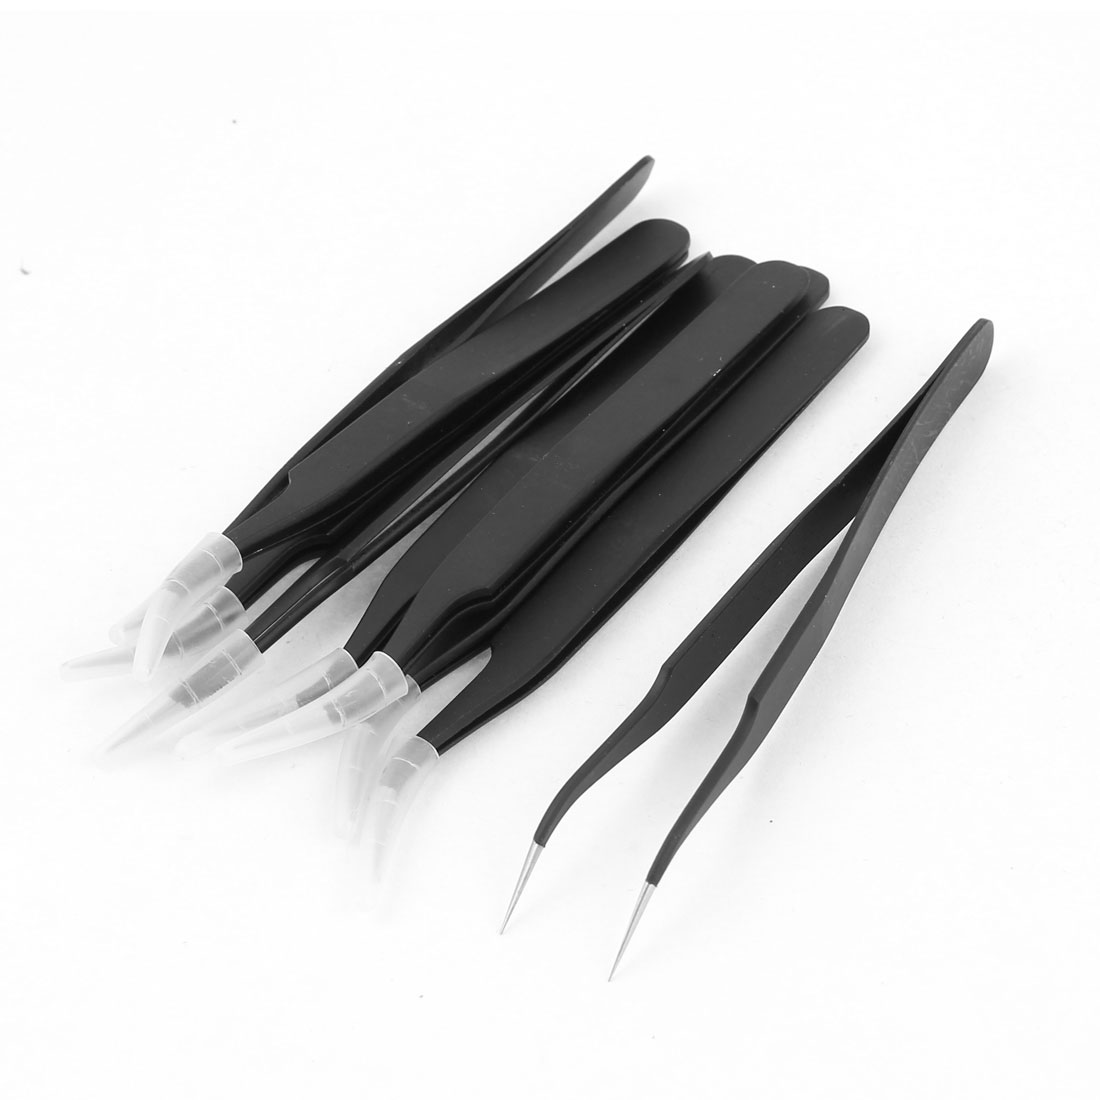 """Unique Bargains 9pcs 5"""" Black Stainless Steel Hand Tool Nipper Anti-Static Curved Tweezers"""